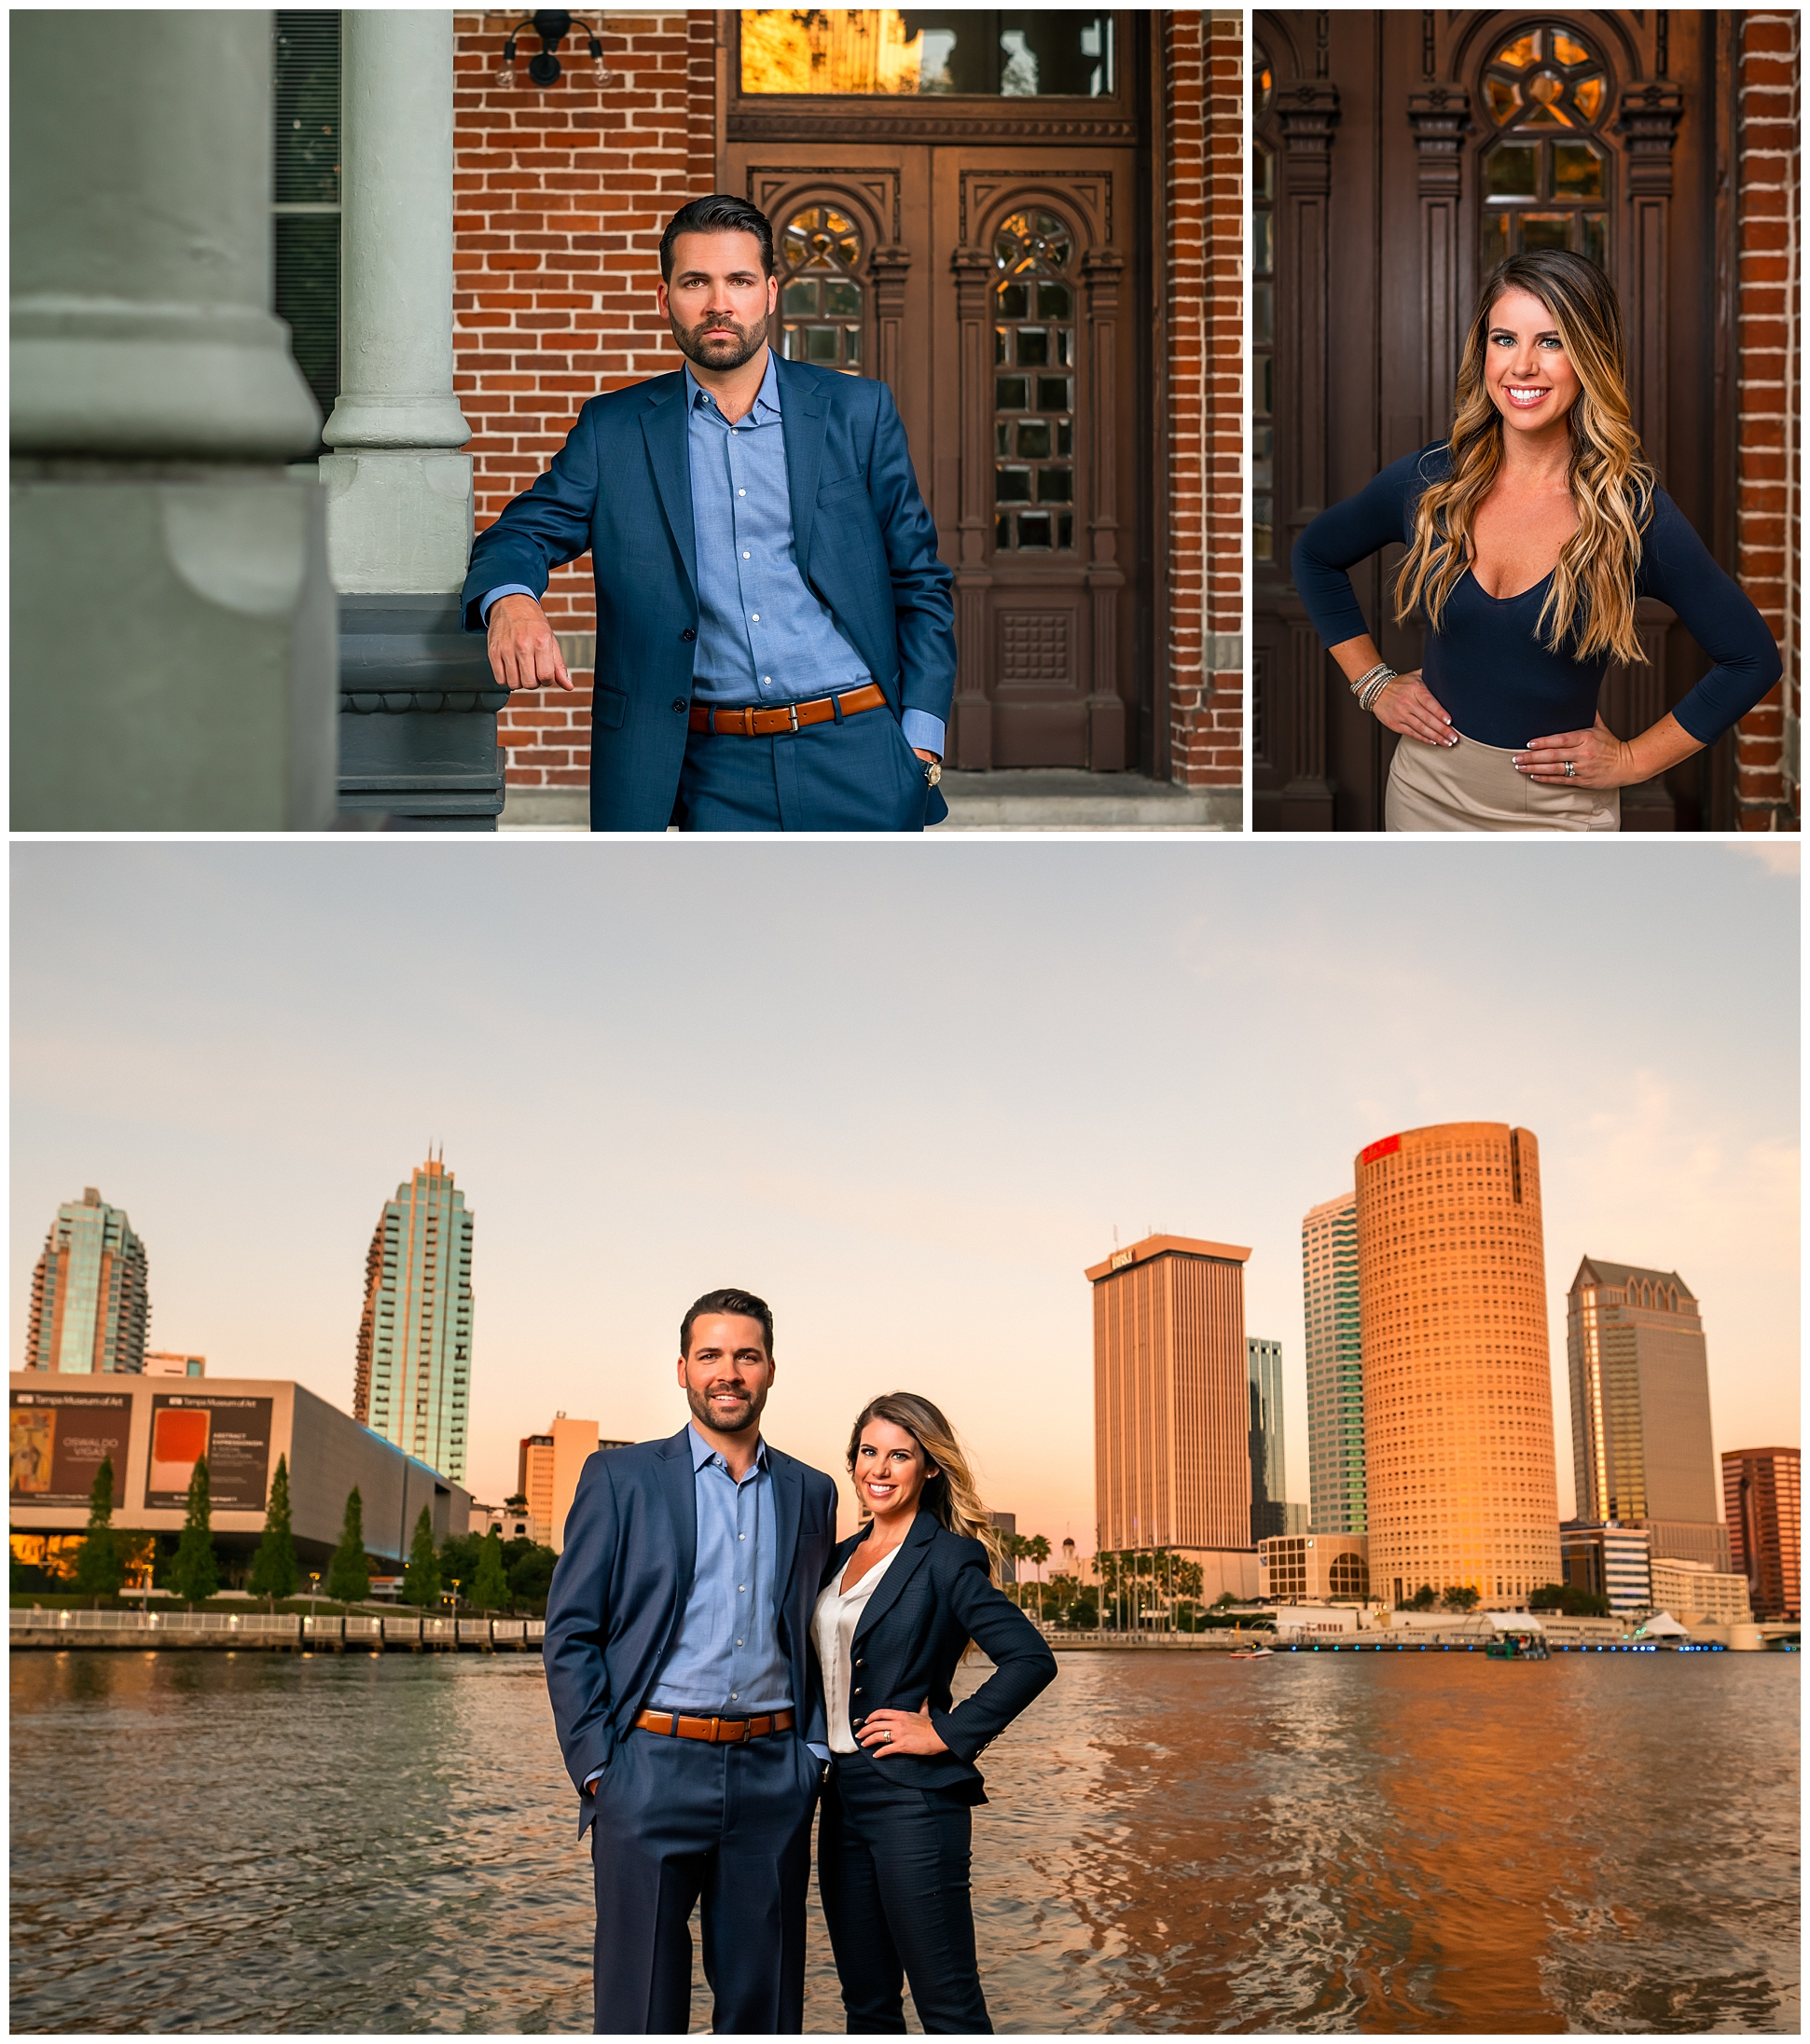 jackie-dave-jenkins-tampa-financial-advisor-branding-head-shot-portrait-client-interactions-university-ut_0015.jpg